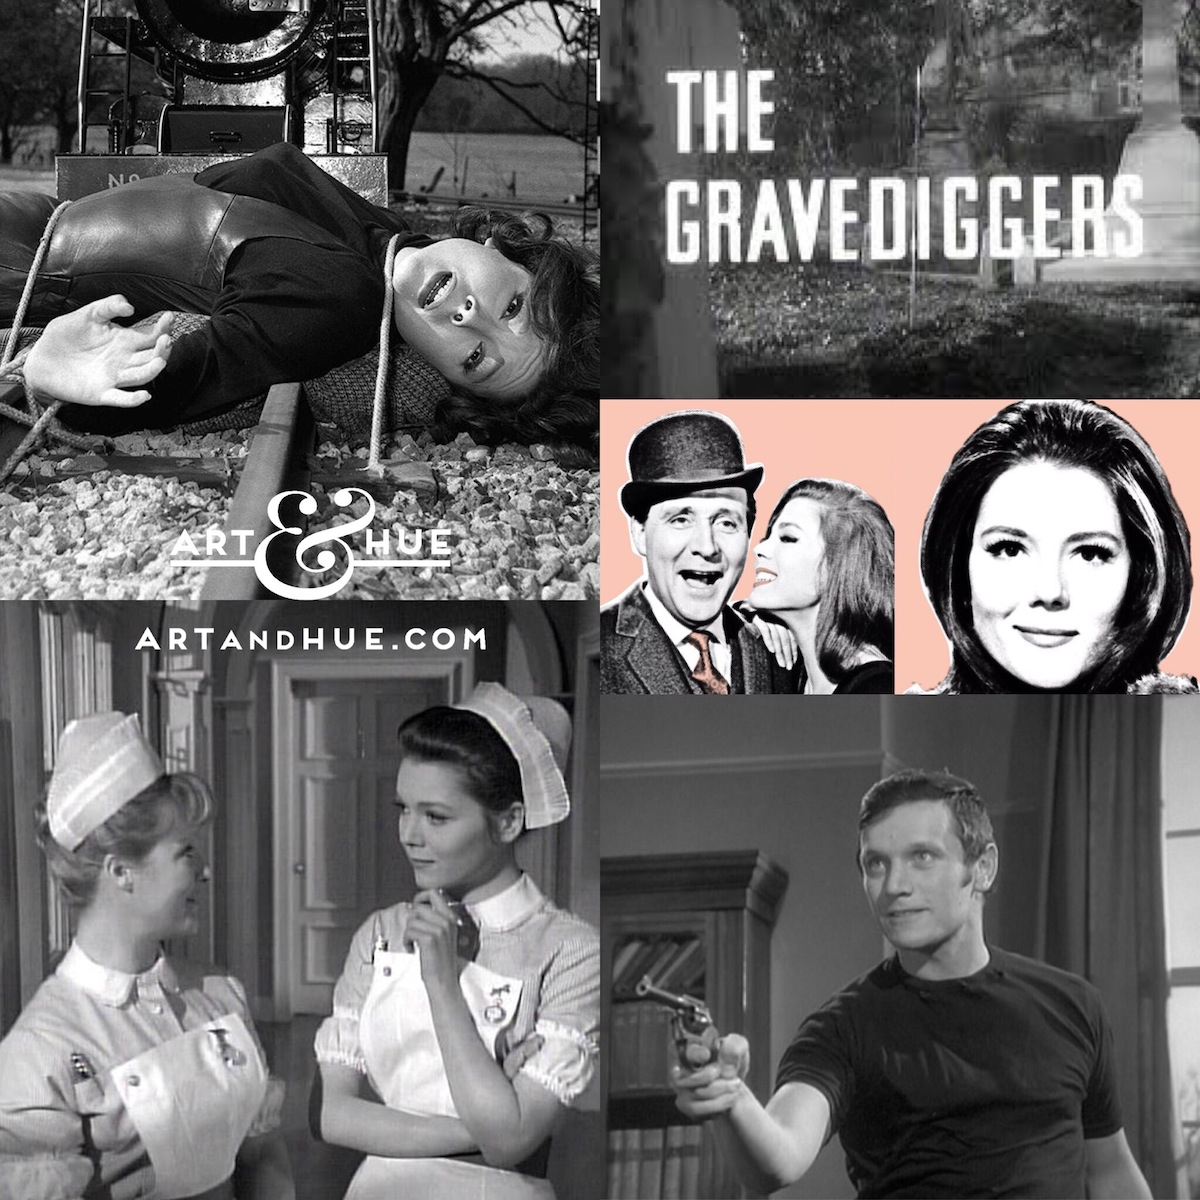 """On this day in 1966, The Avengers episode """"The Gravediggers"""" aired on American TV for the first time, guest-starring Wanda Ventham, Steven Berkoff & Caroline Blakiston.   http://artandhue.com/theavengers   #TheAvengers #ElstreeStudios #dianarigg #mrspeel #patrickmacneepic.twitter.com/7OsHGbZyVx"""